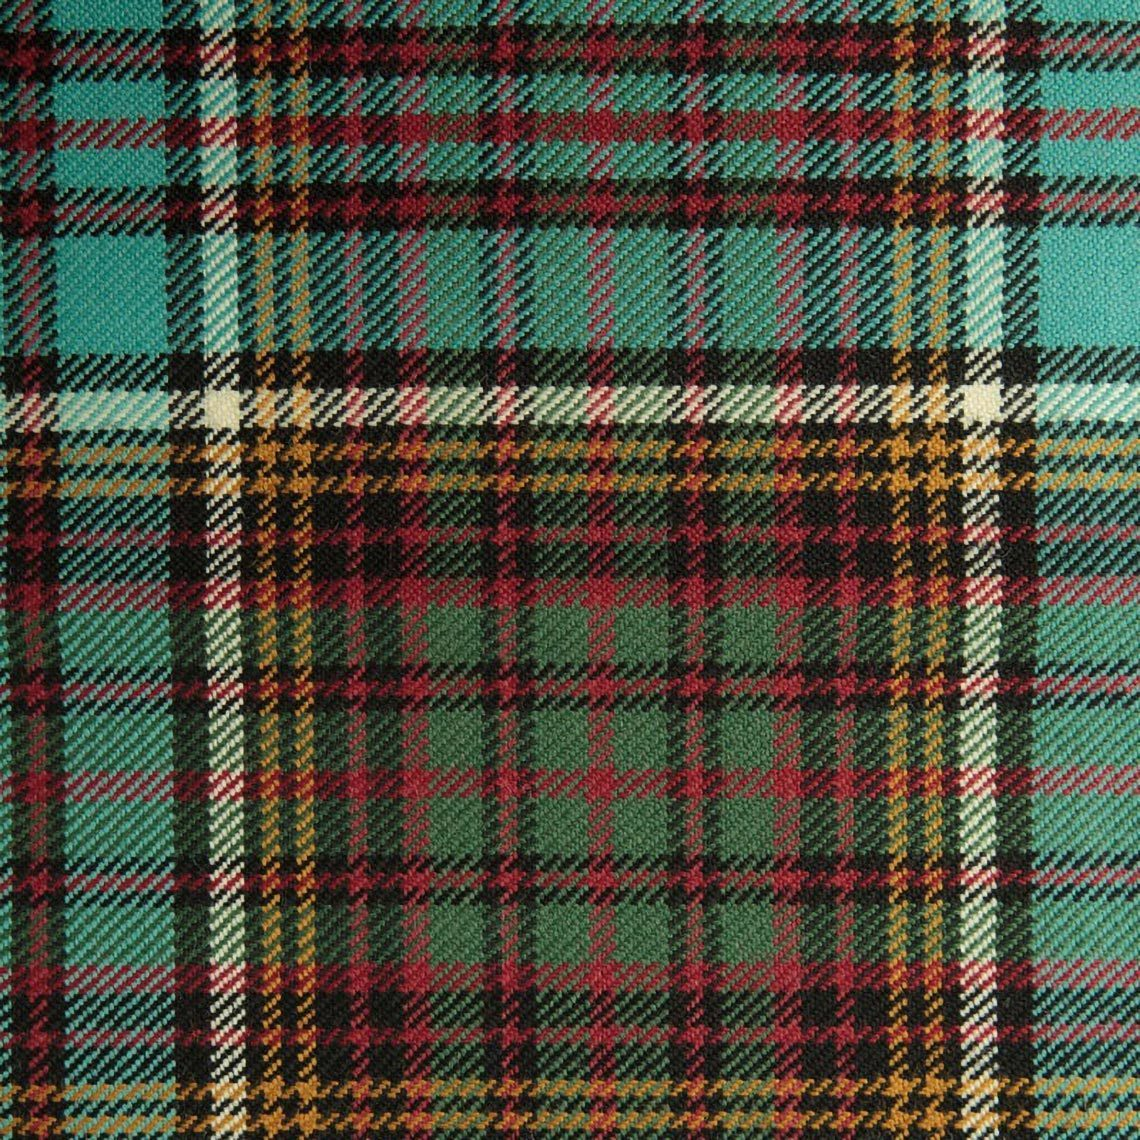 Anderson (Muted) Kilt